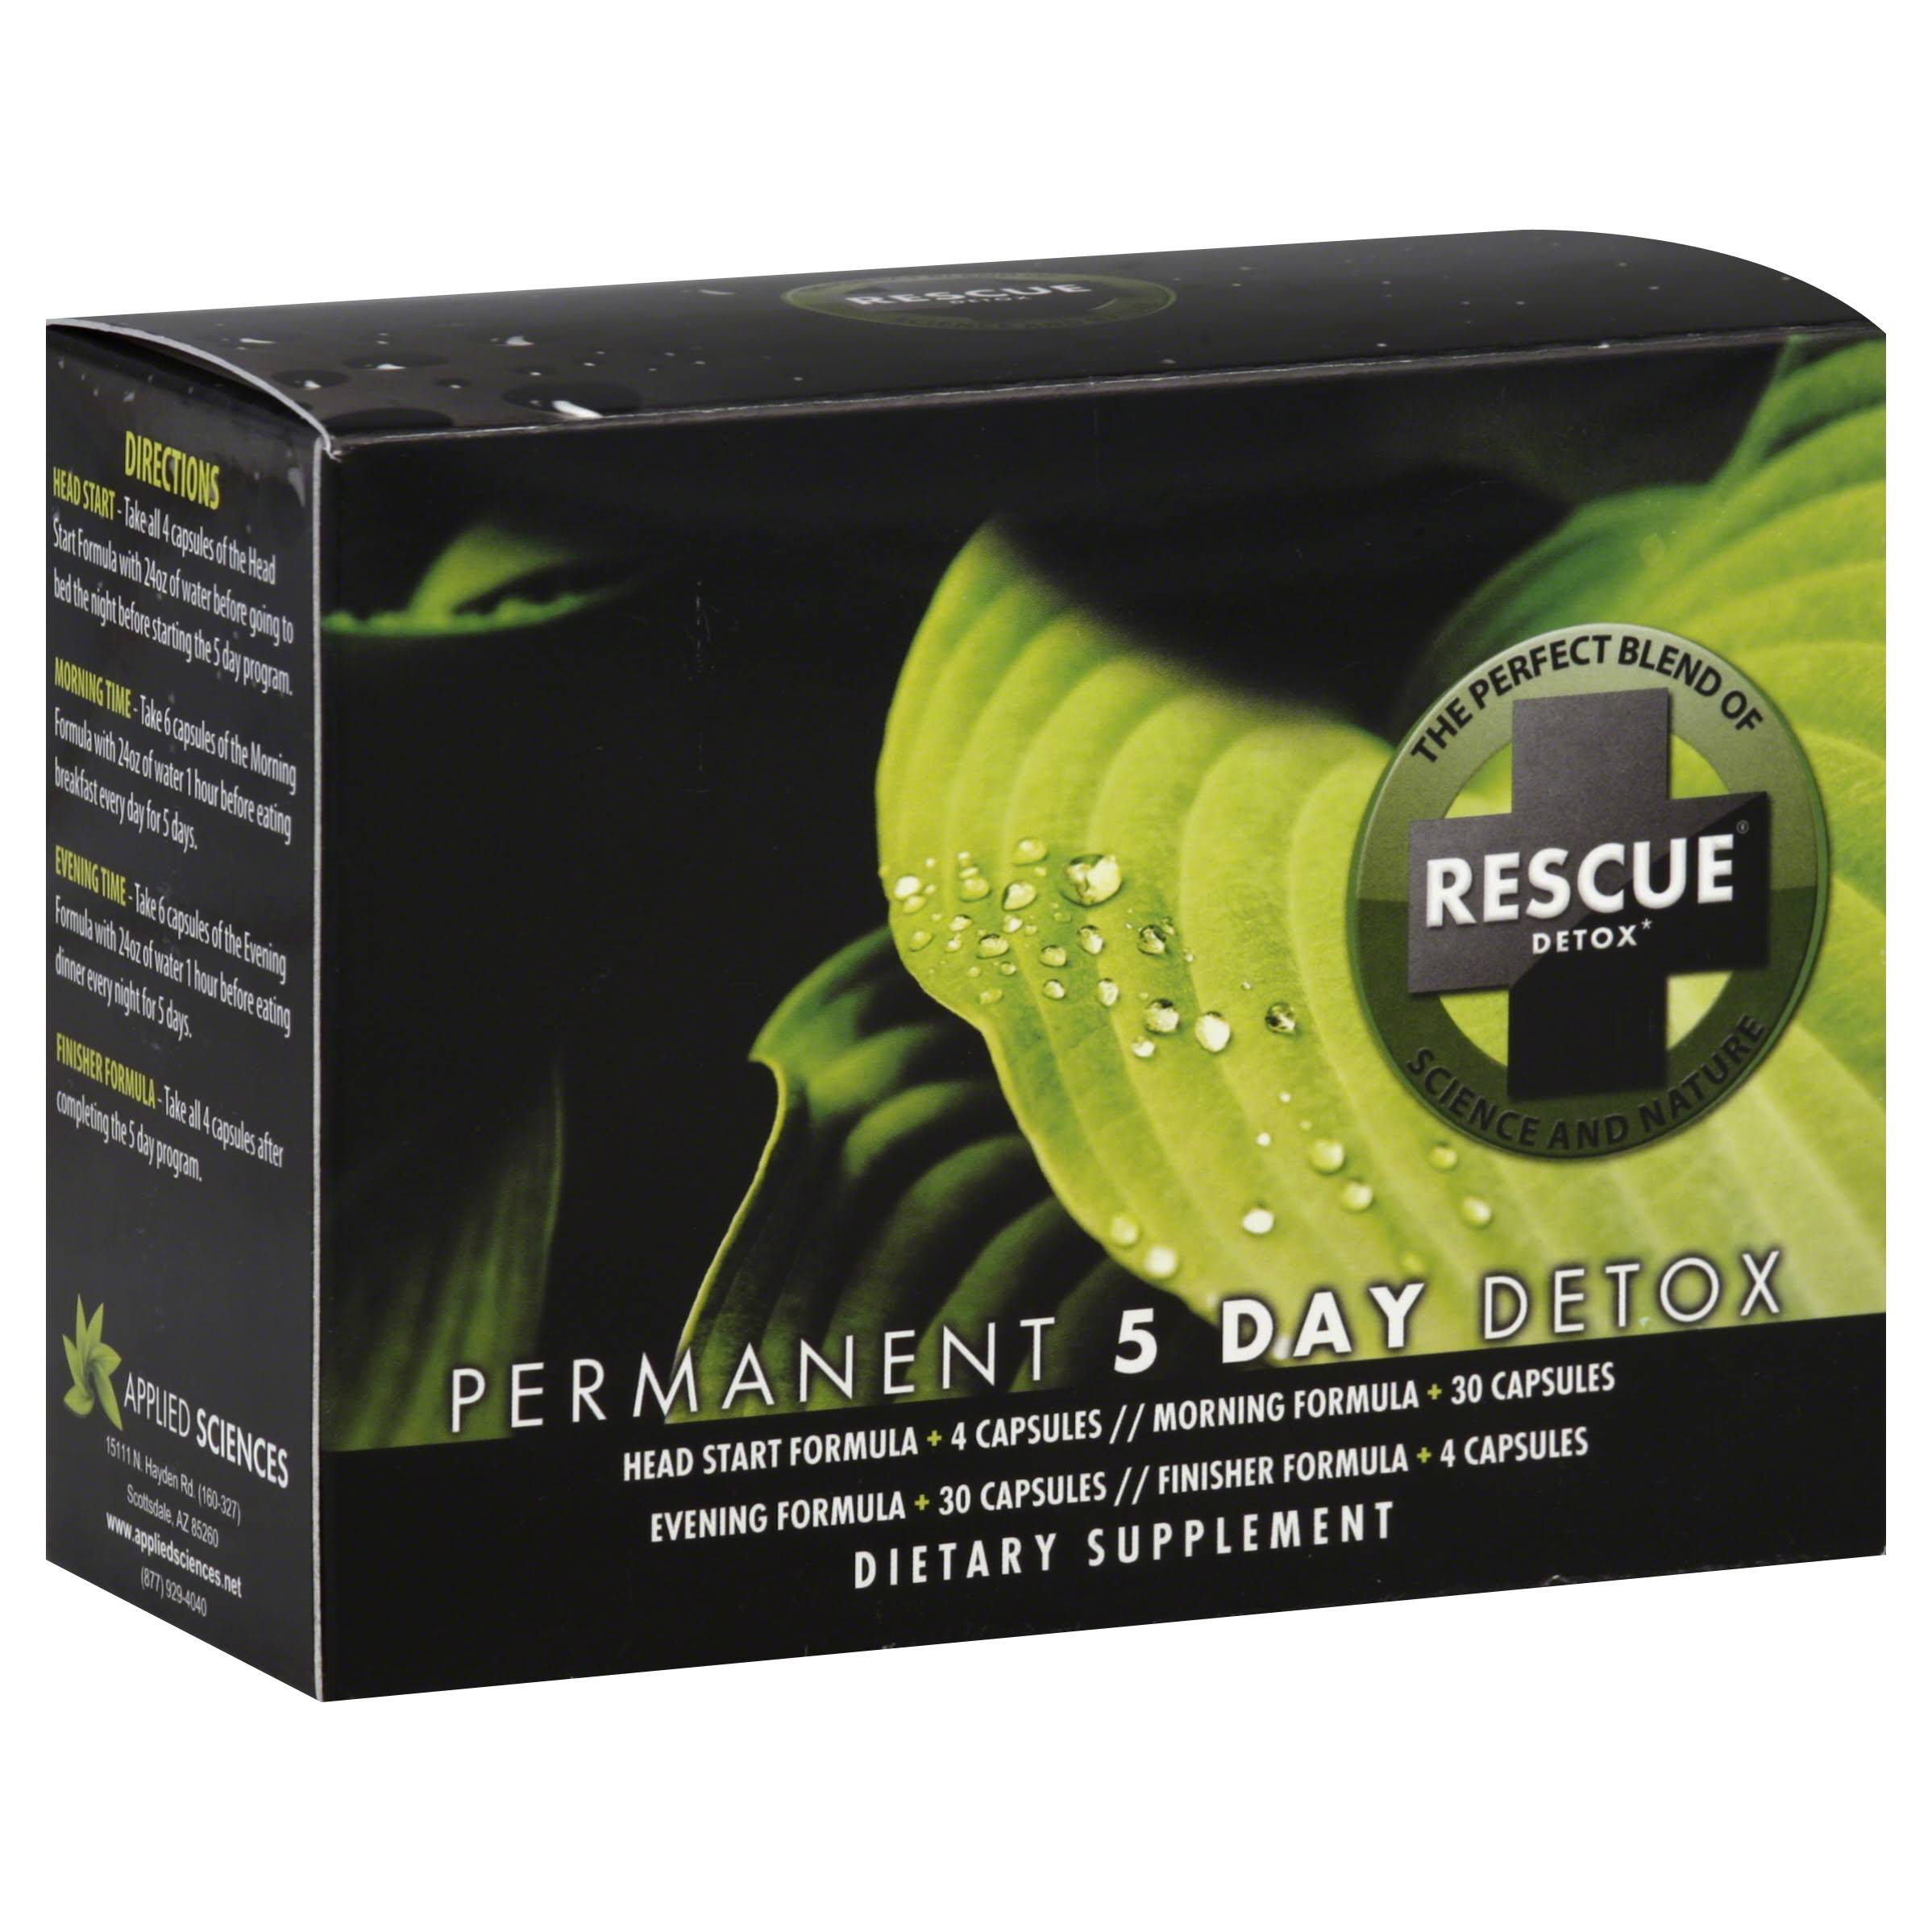 Rescue Detox Permanent 5 Day Detox Kit